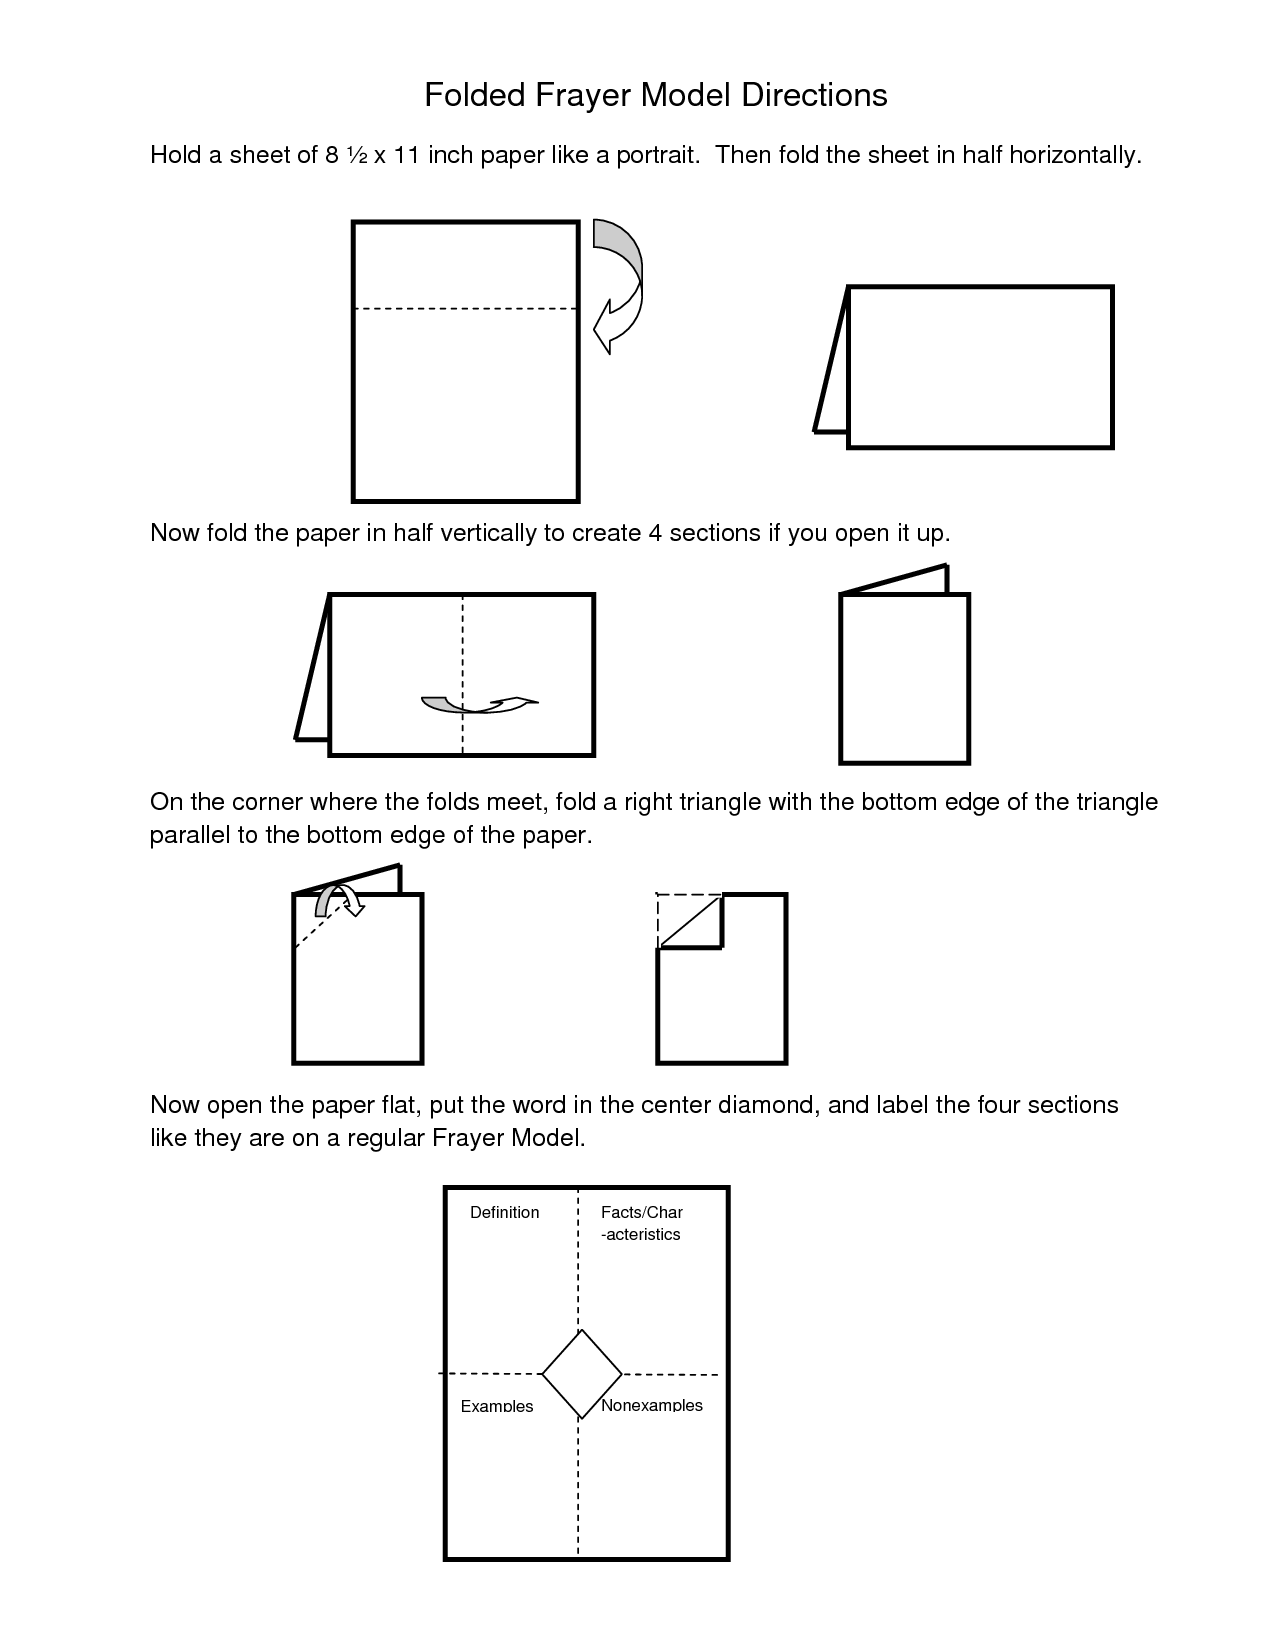 worksheet Frayer Model Worksheet frayer model template word directions for folded sau 64